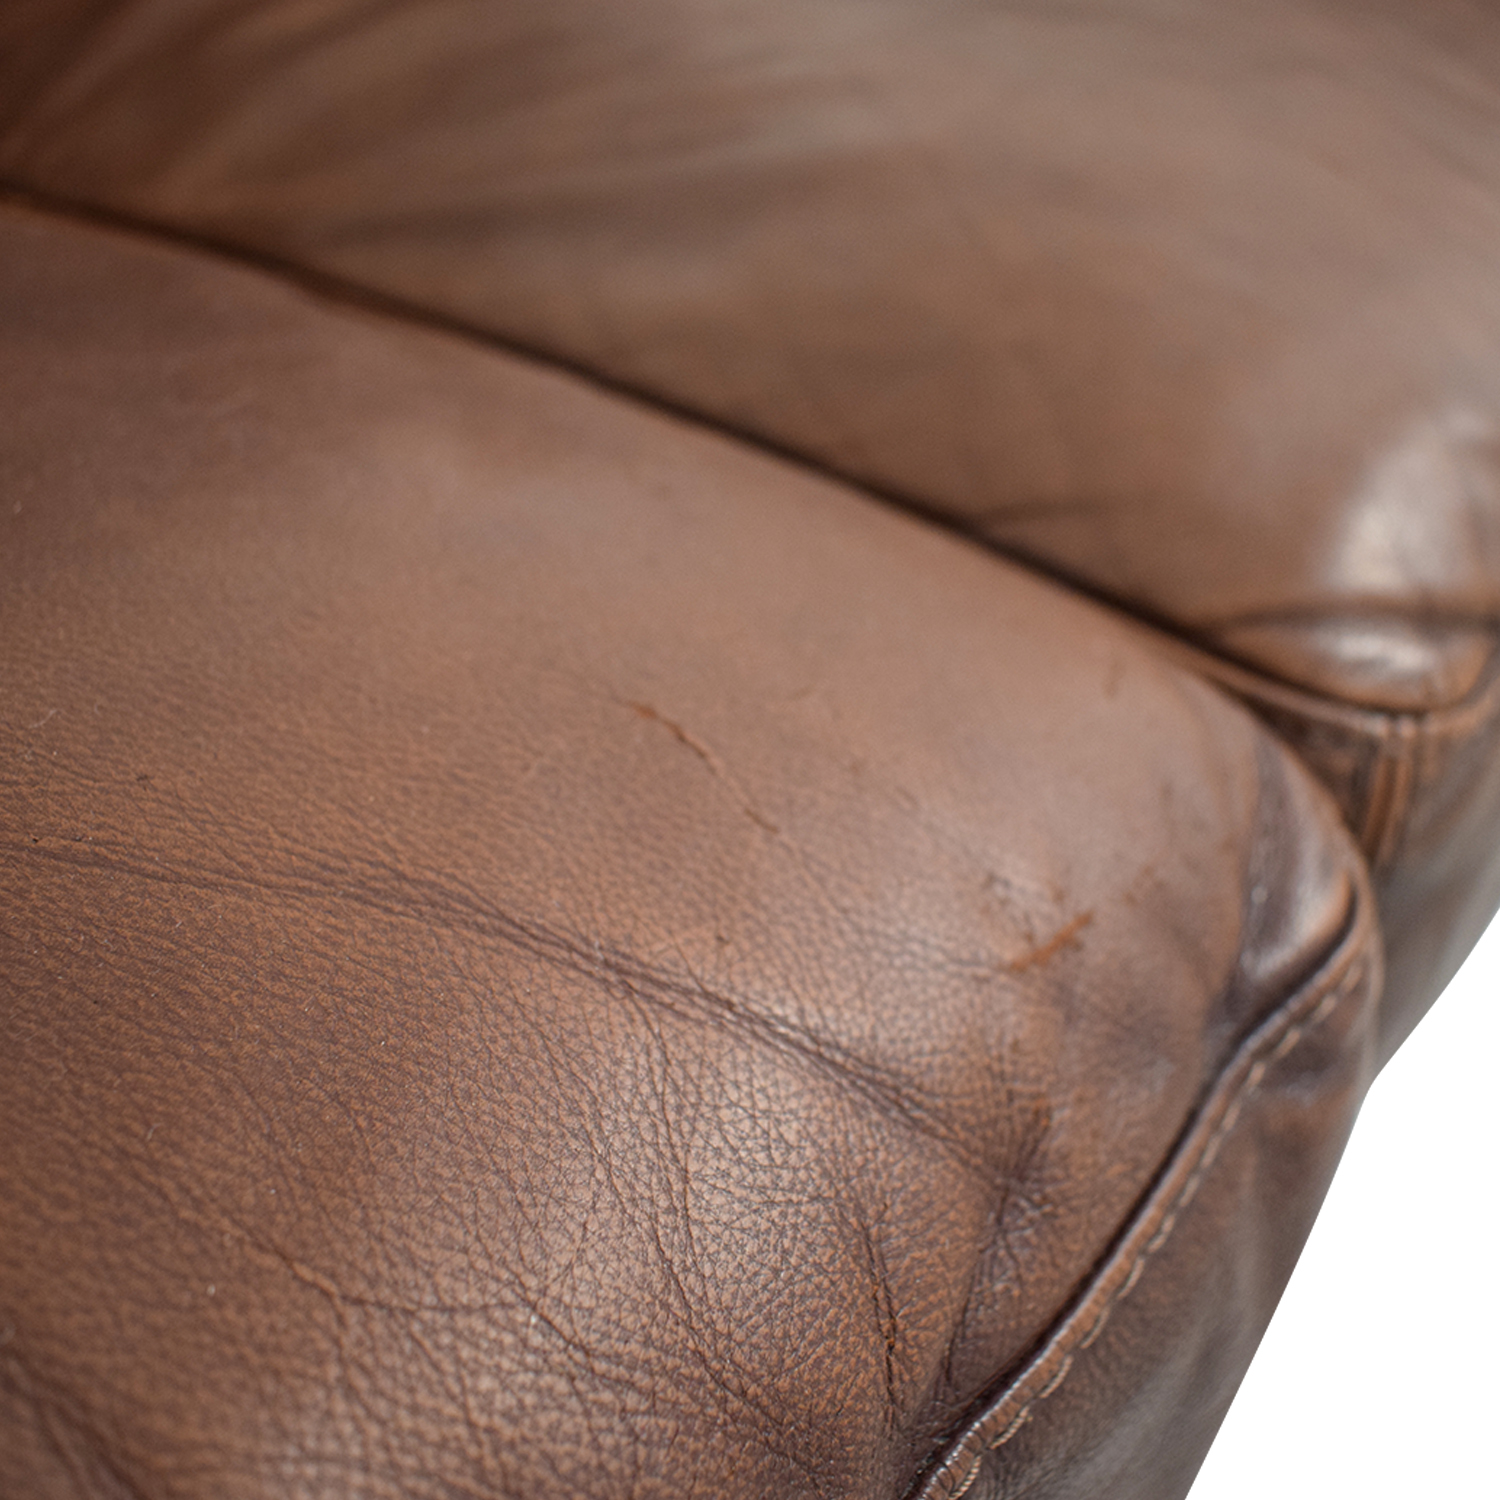 Macy's Macy's Brown Leather Two-Cushion Loveseat used